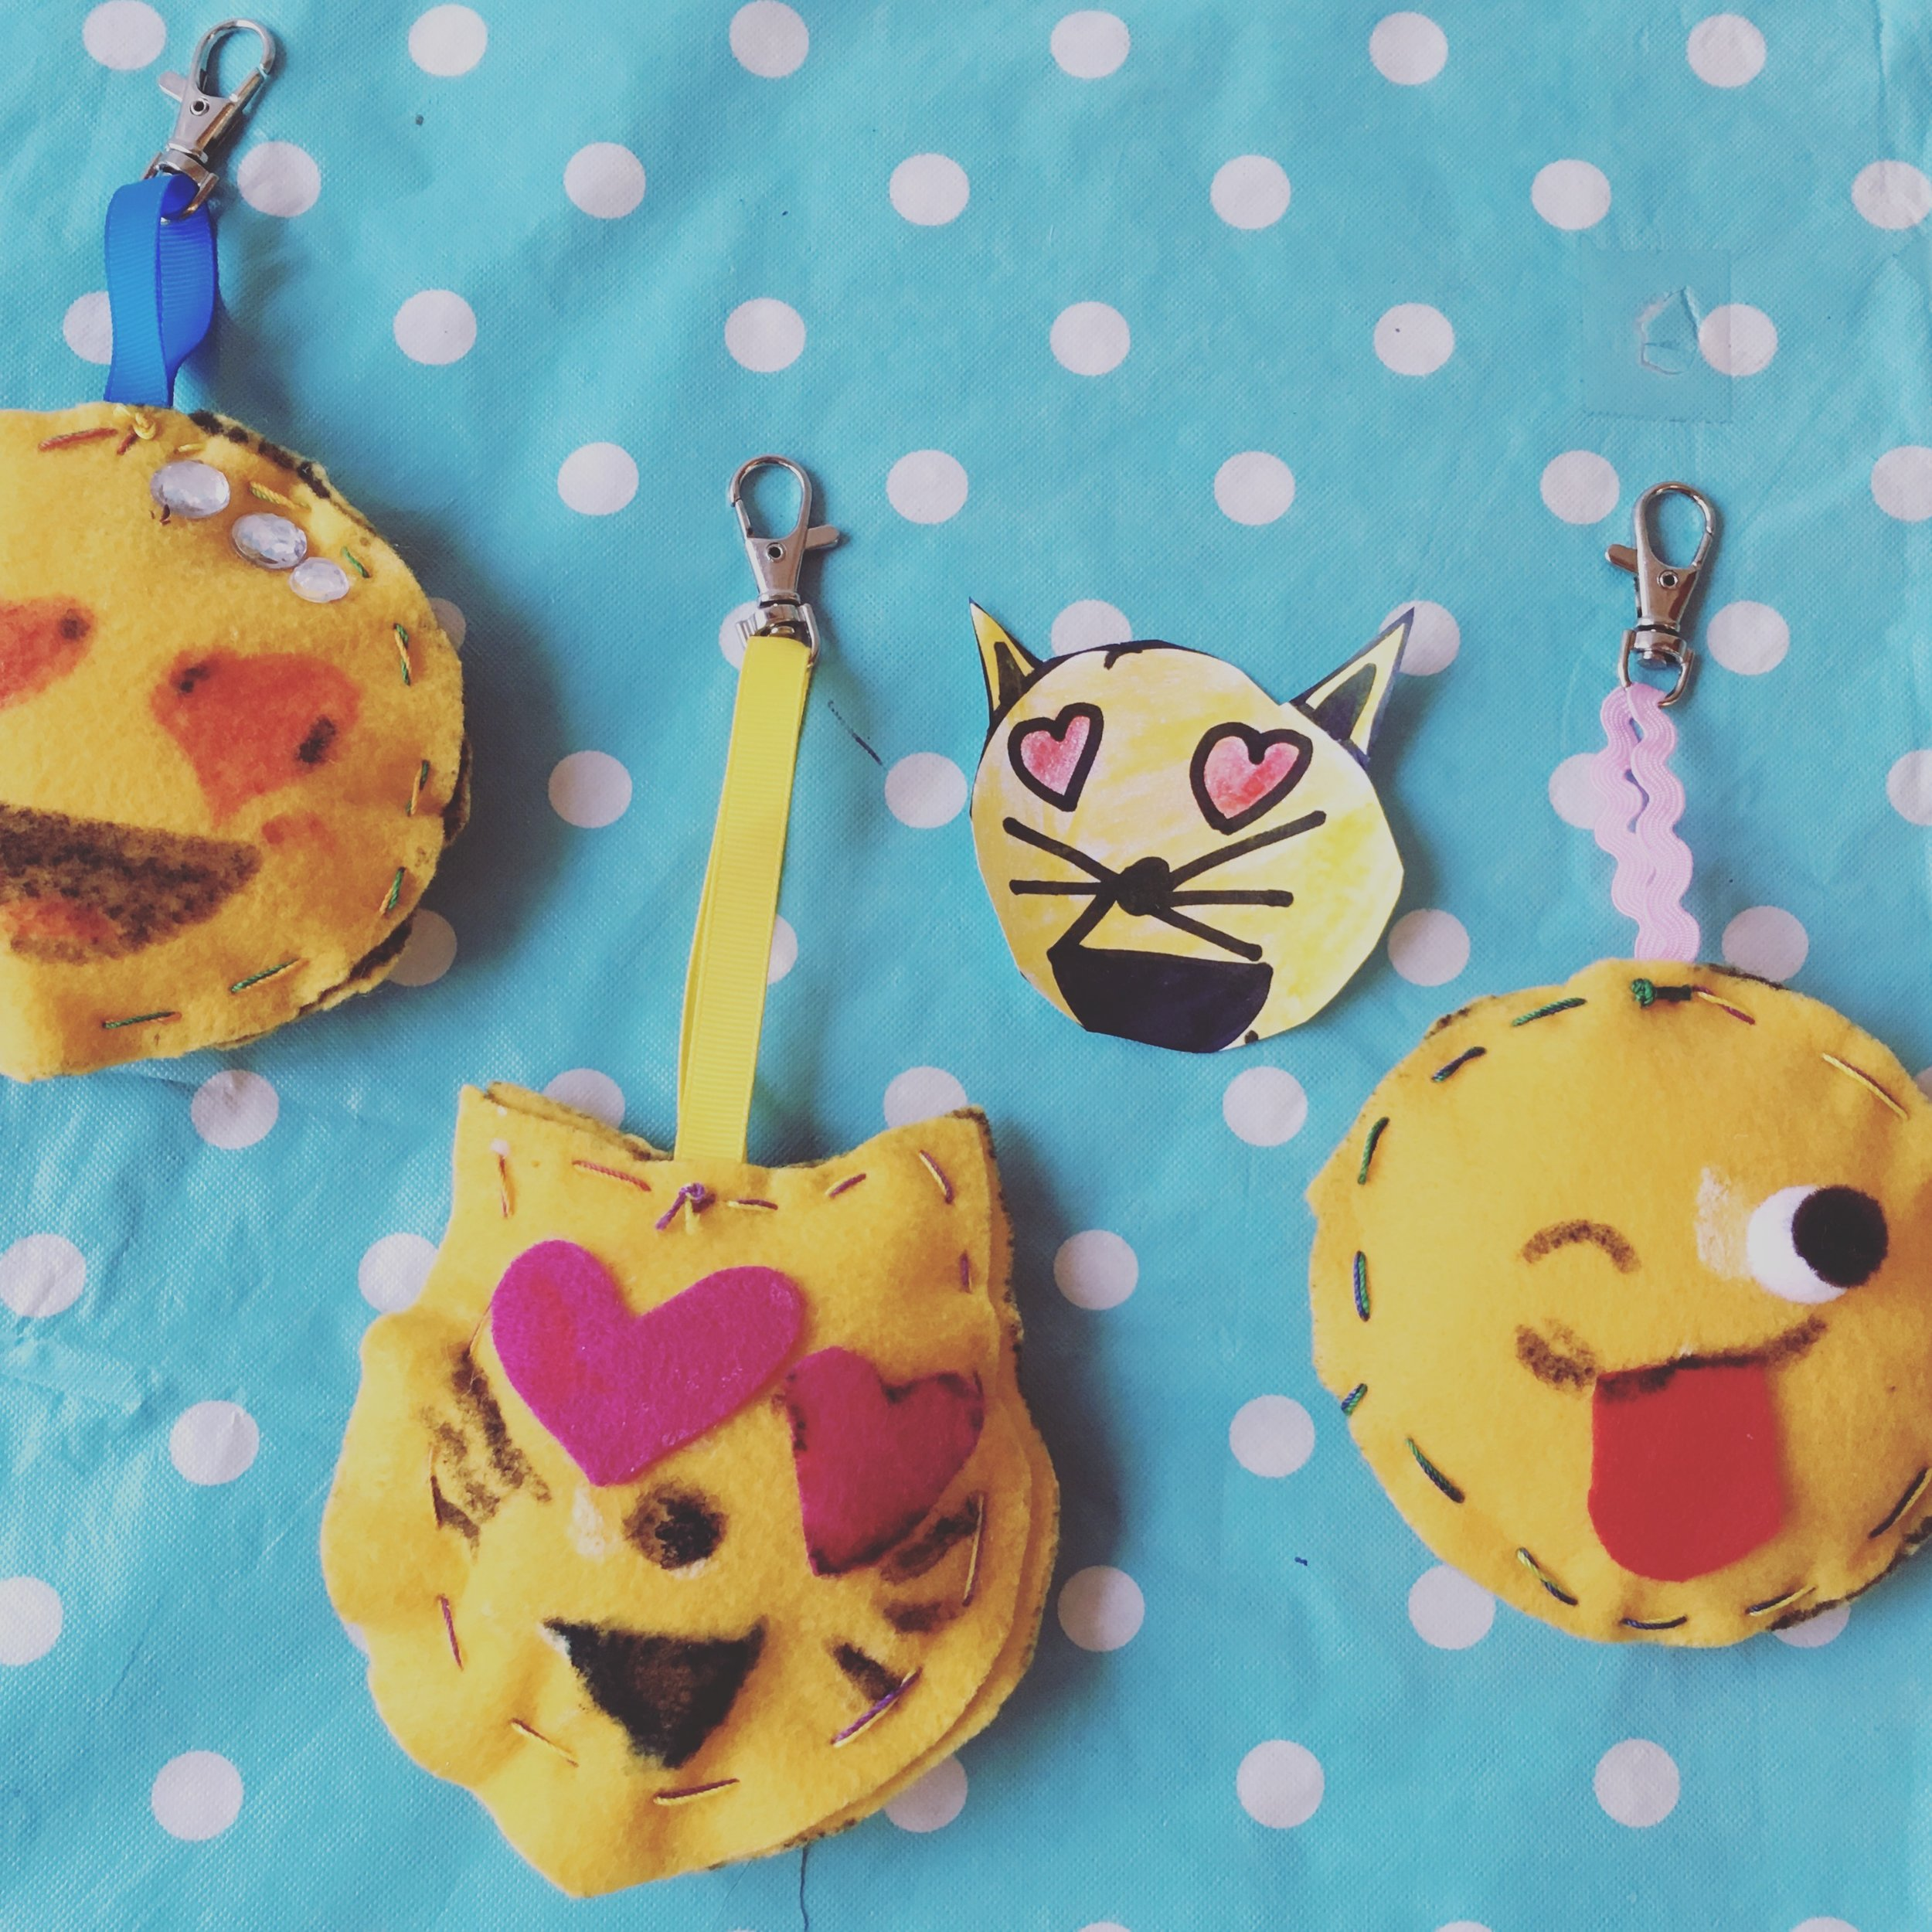 Charmed I'm Sure- Emoji! - ages 7 and up - Similar to our original Charmed I'm Sure project but with a dash of Emoji! Kids will learn the basics of hand sewing and pattern making to create an adorable, one of a kind charm.